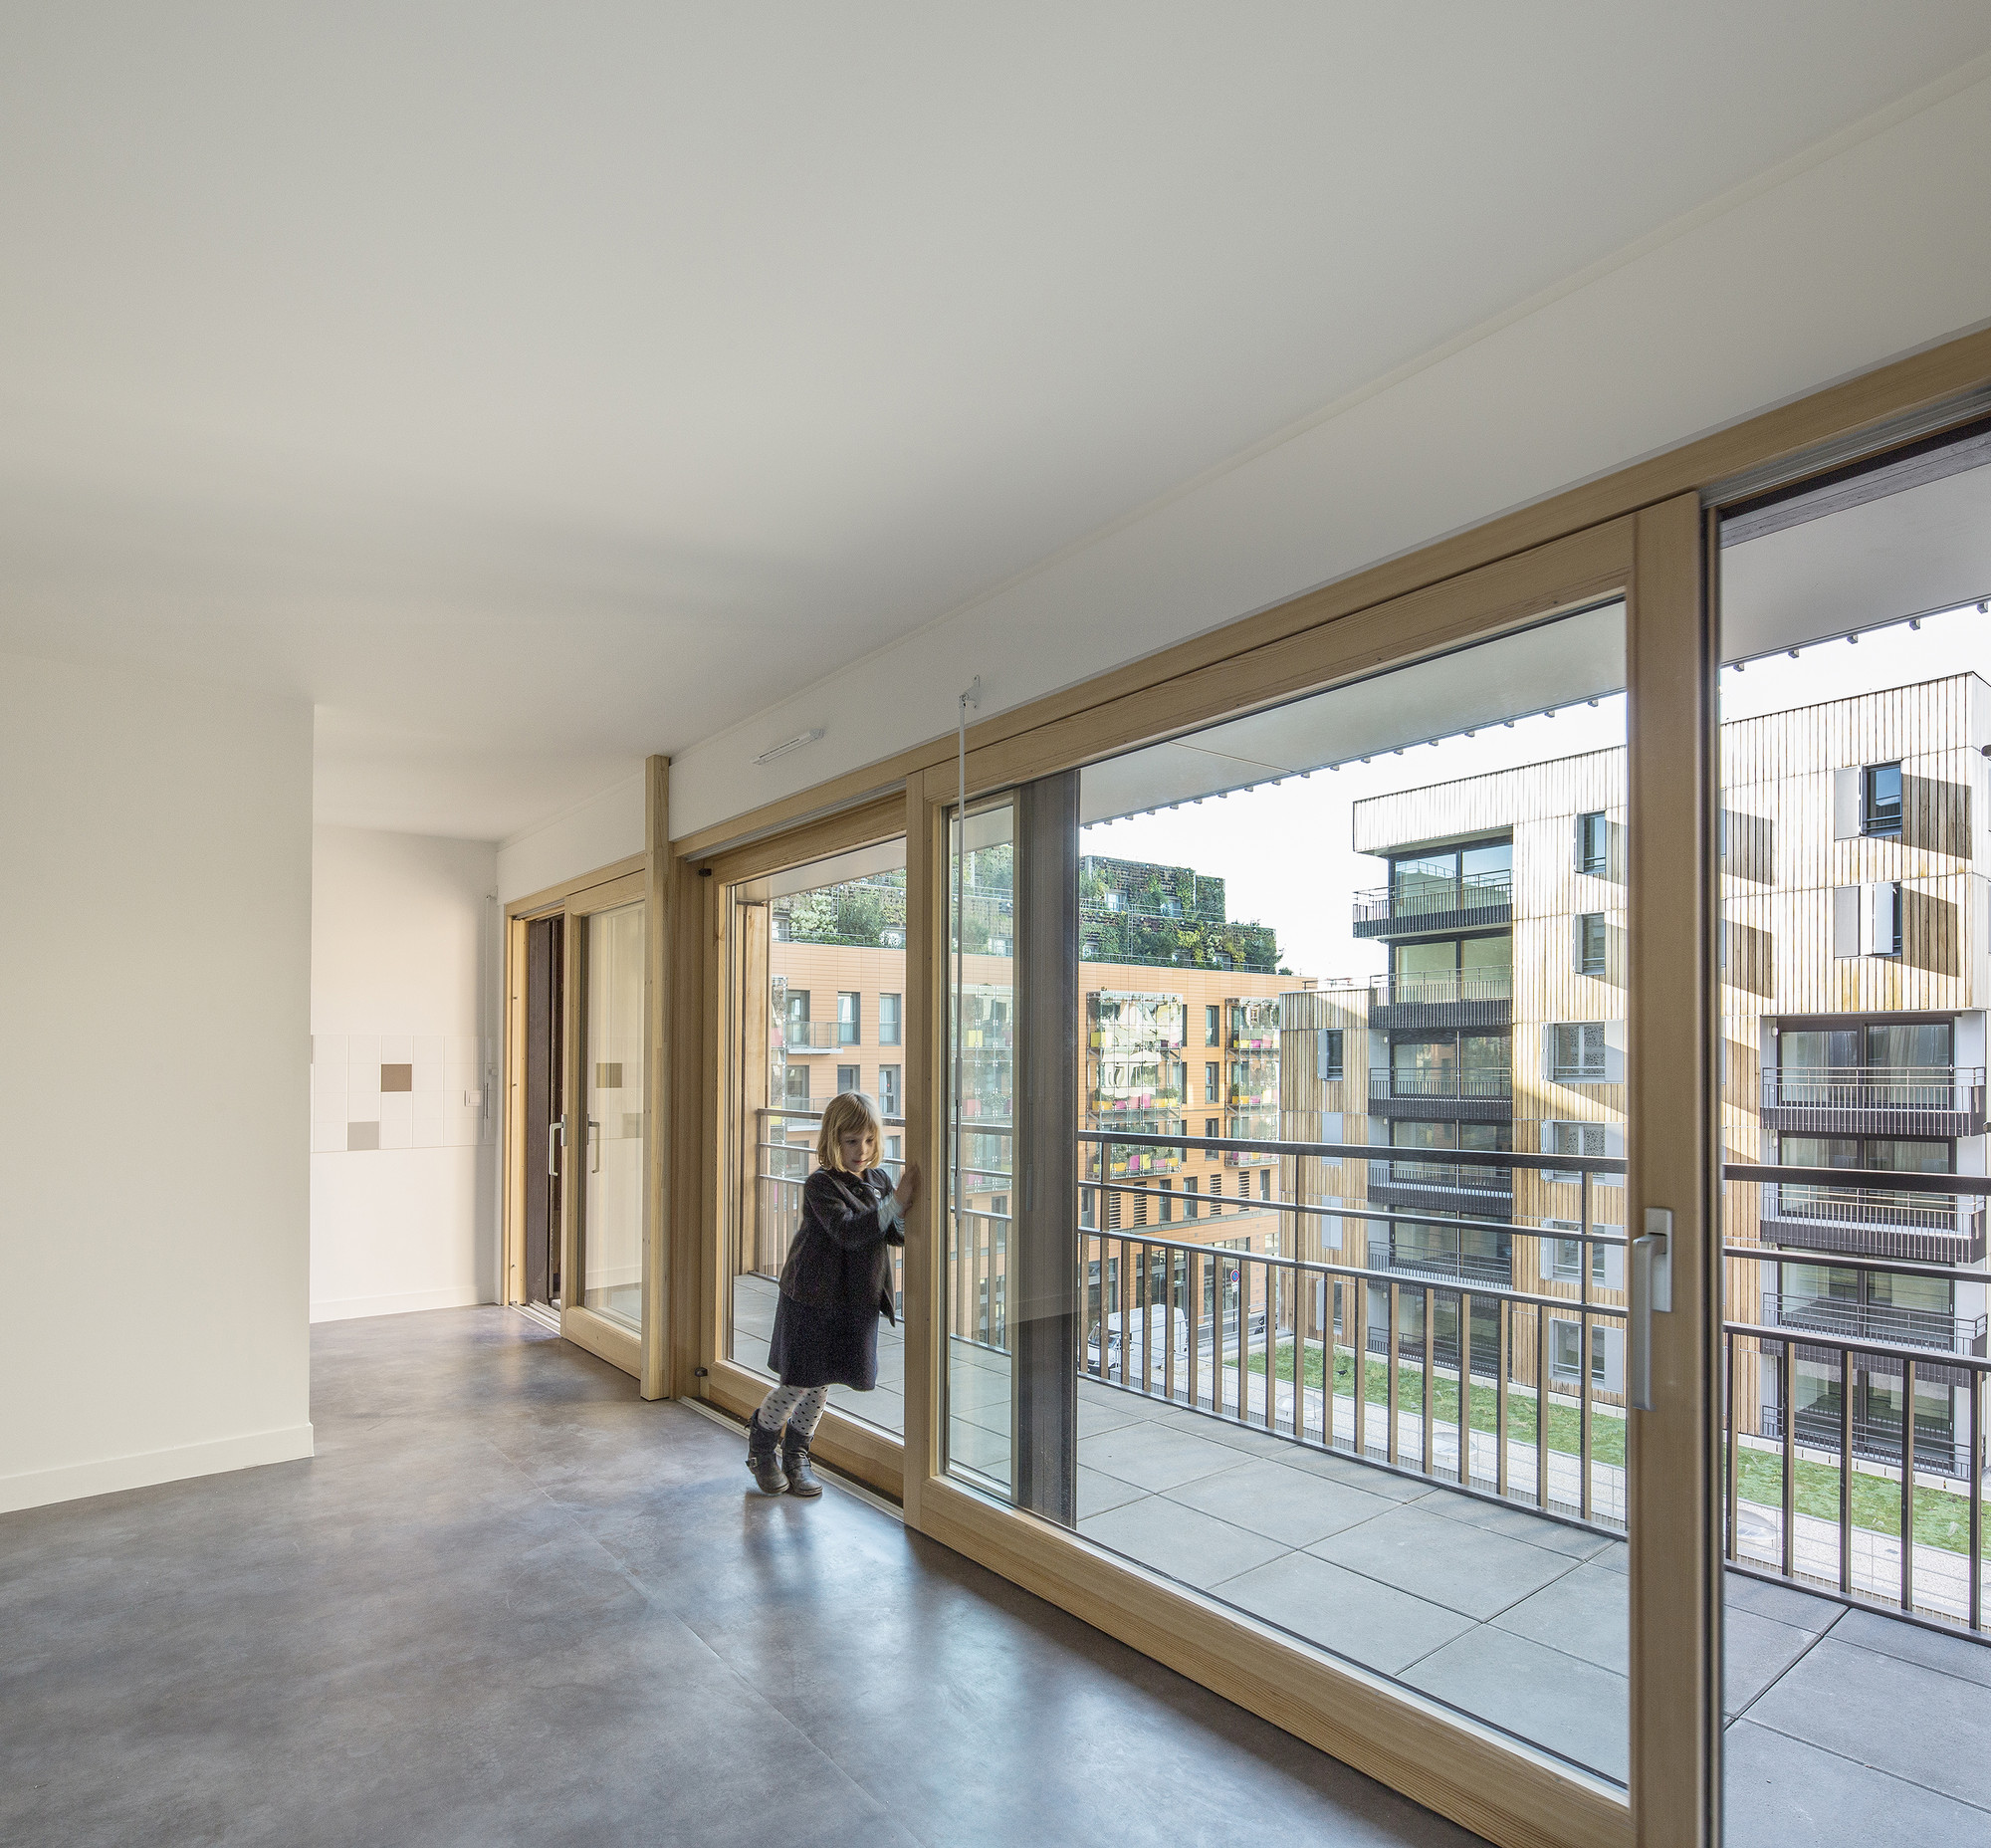 Gallery of Mixed Use 107 Apartement Units / Nunc Architectes - 19